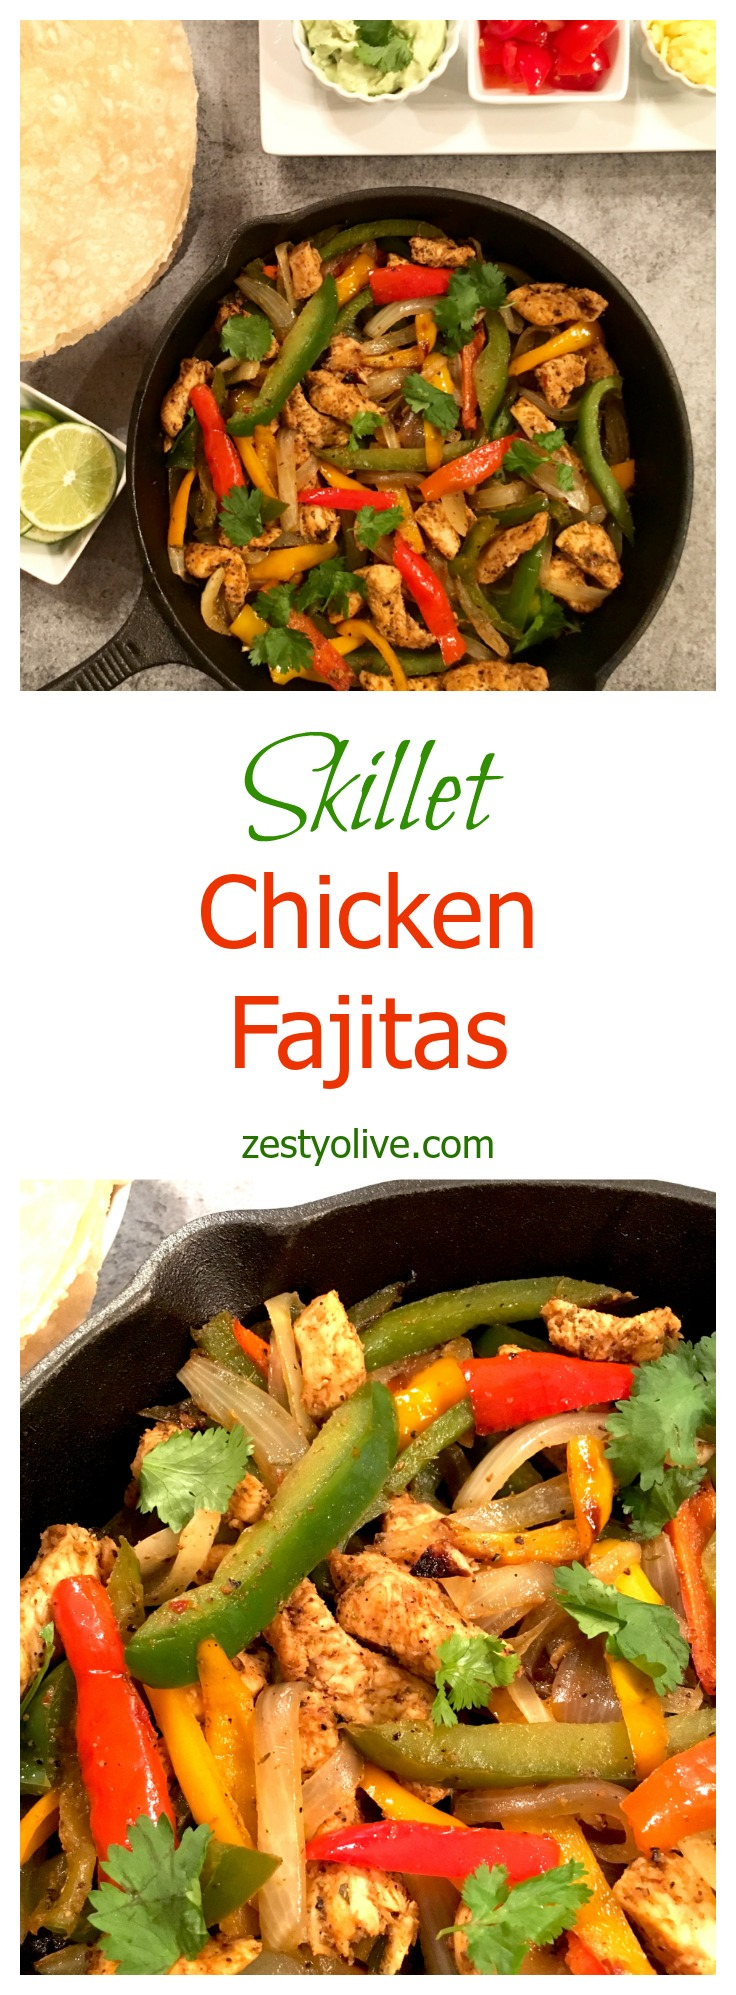 Skillet Chicken Fajitas - easy and delicious! zestyolive.com